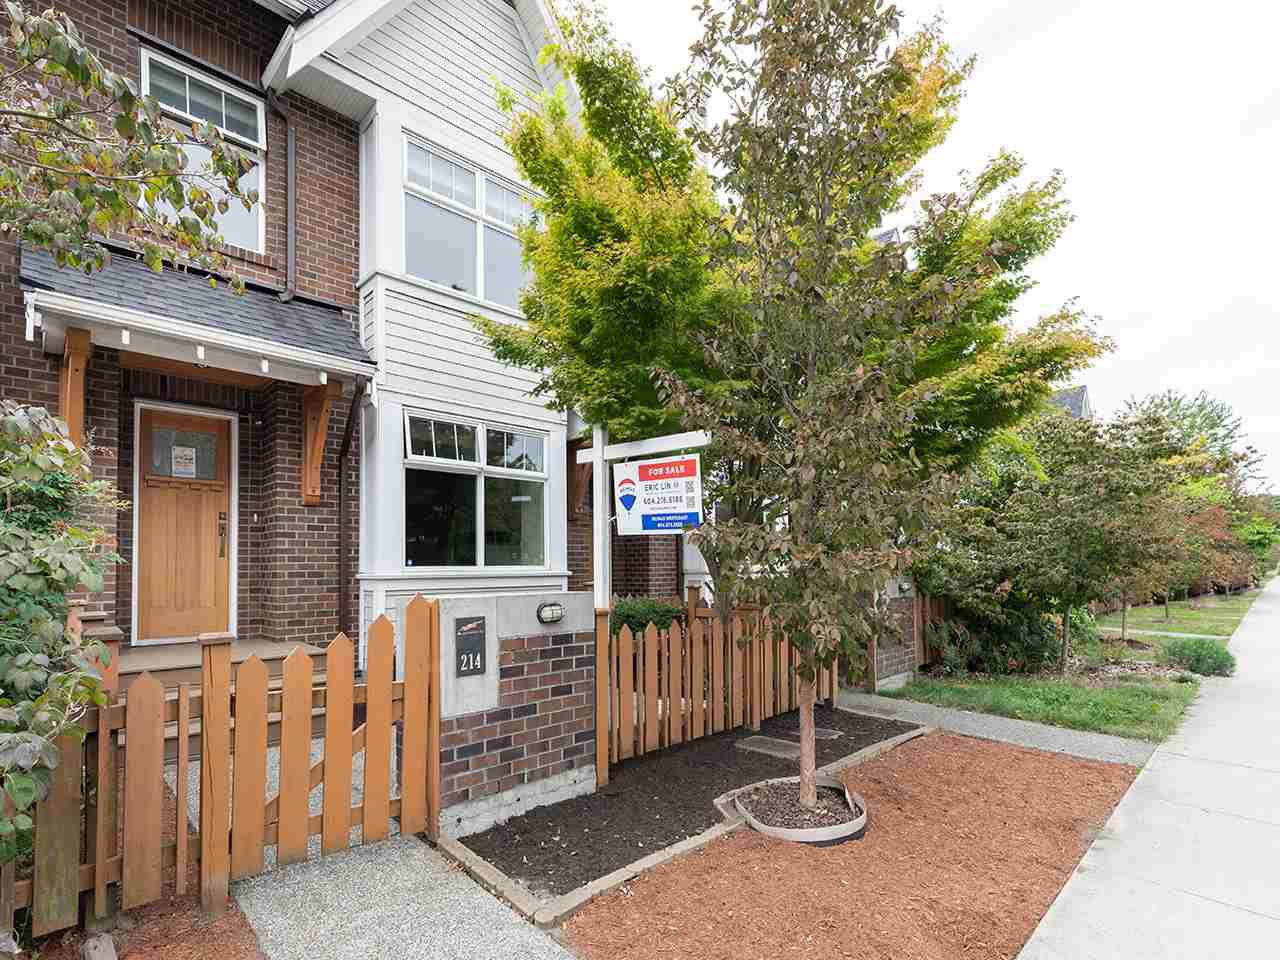 """Main Photo: 214 BROOKES Street in New Westminster: Queensborough Condo for sale in """"RED BOAT AT PORT ROYAL"""" : MLS®# R2488520"""